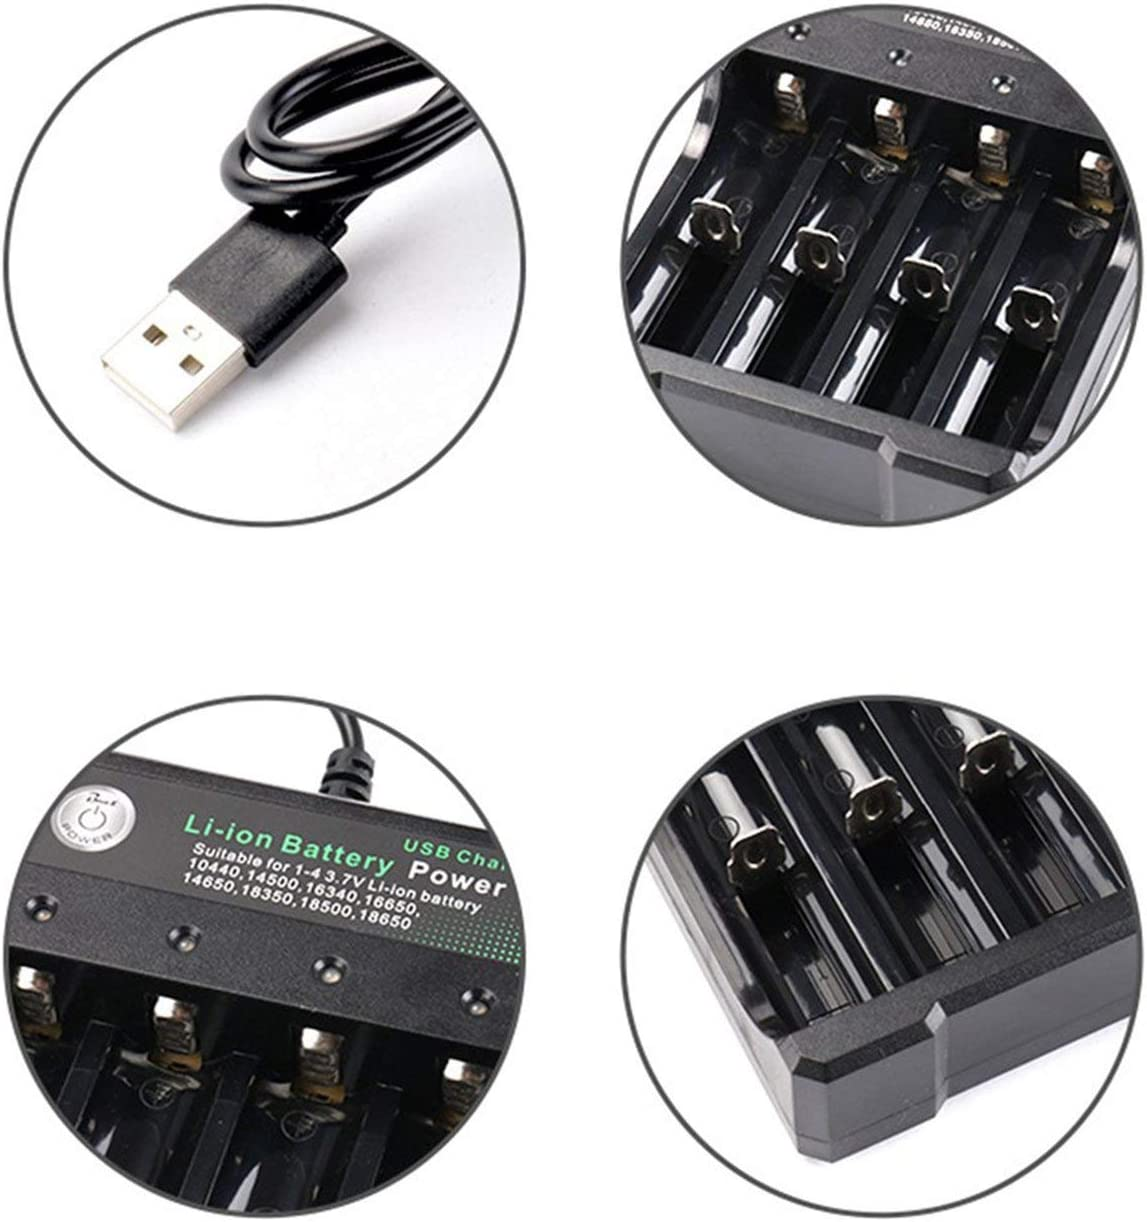 Battery Charger for 3.7V 18650 Batteries 4 Ports Battery Charger with USB Plug